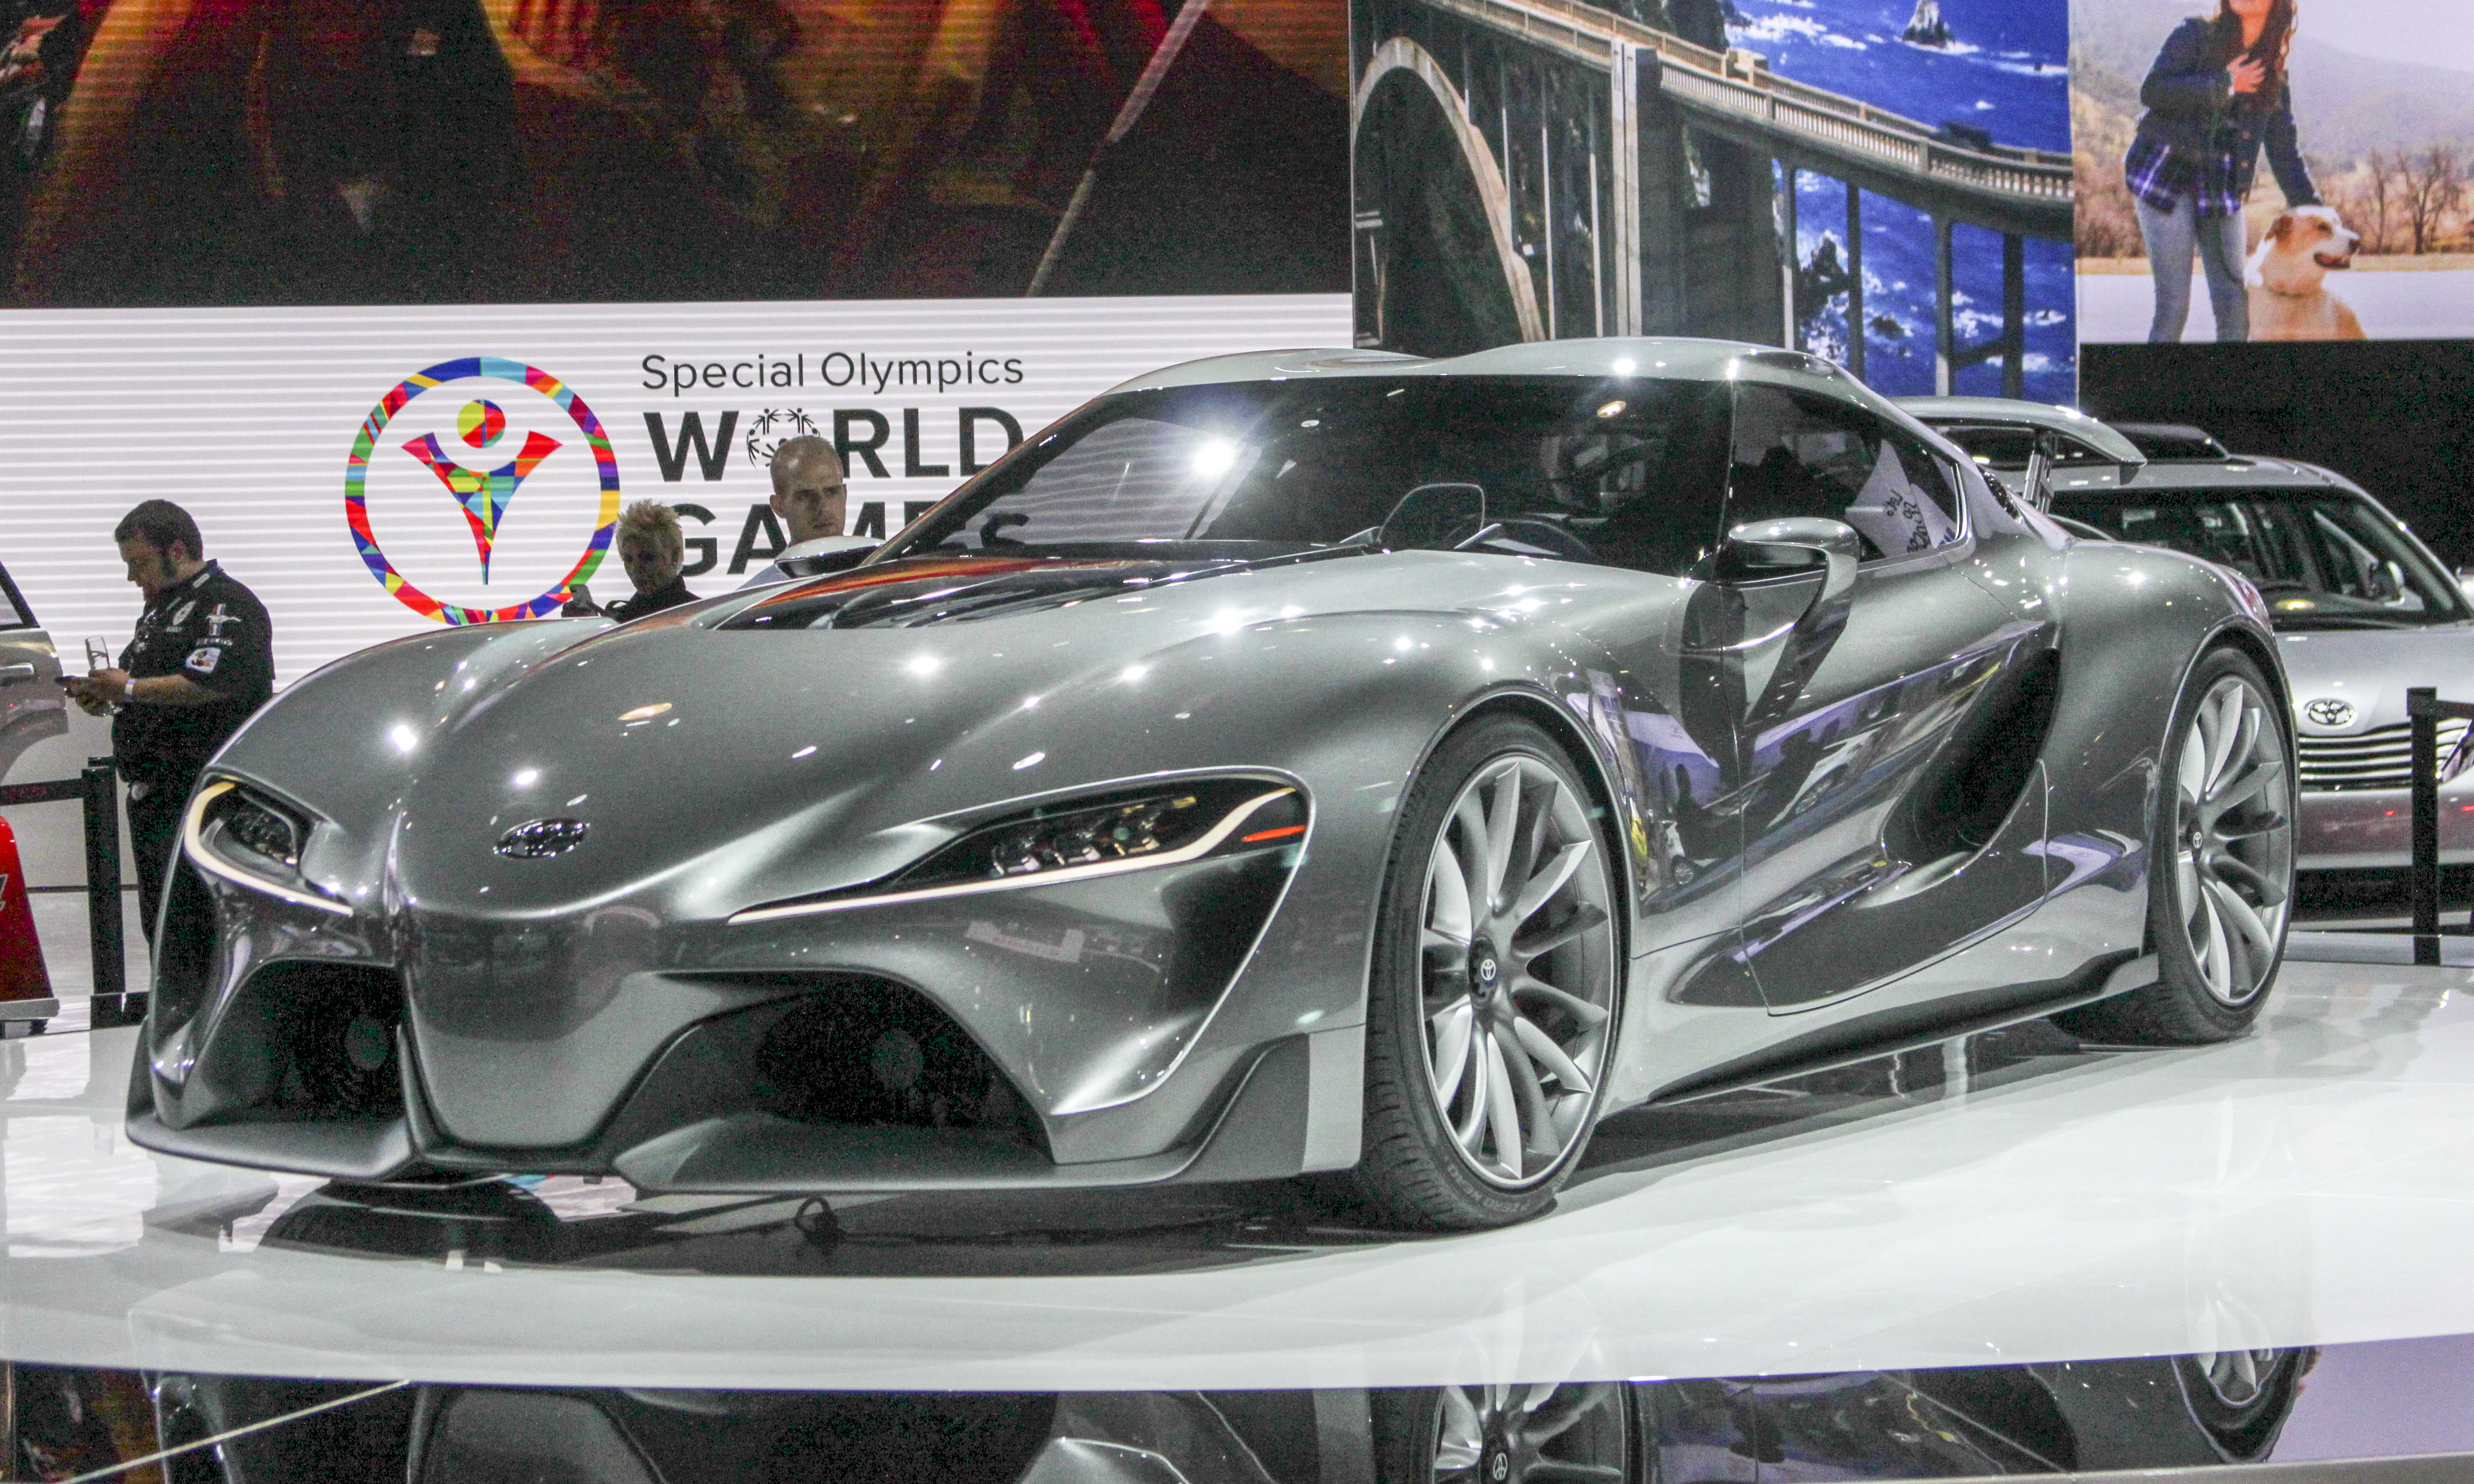 Charmant Perry Stern Toyota FT 1 Concept